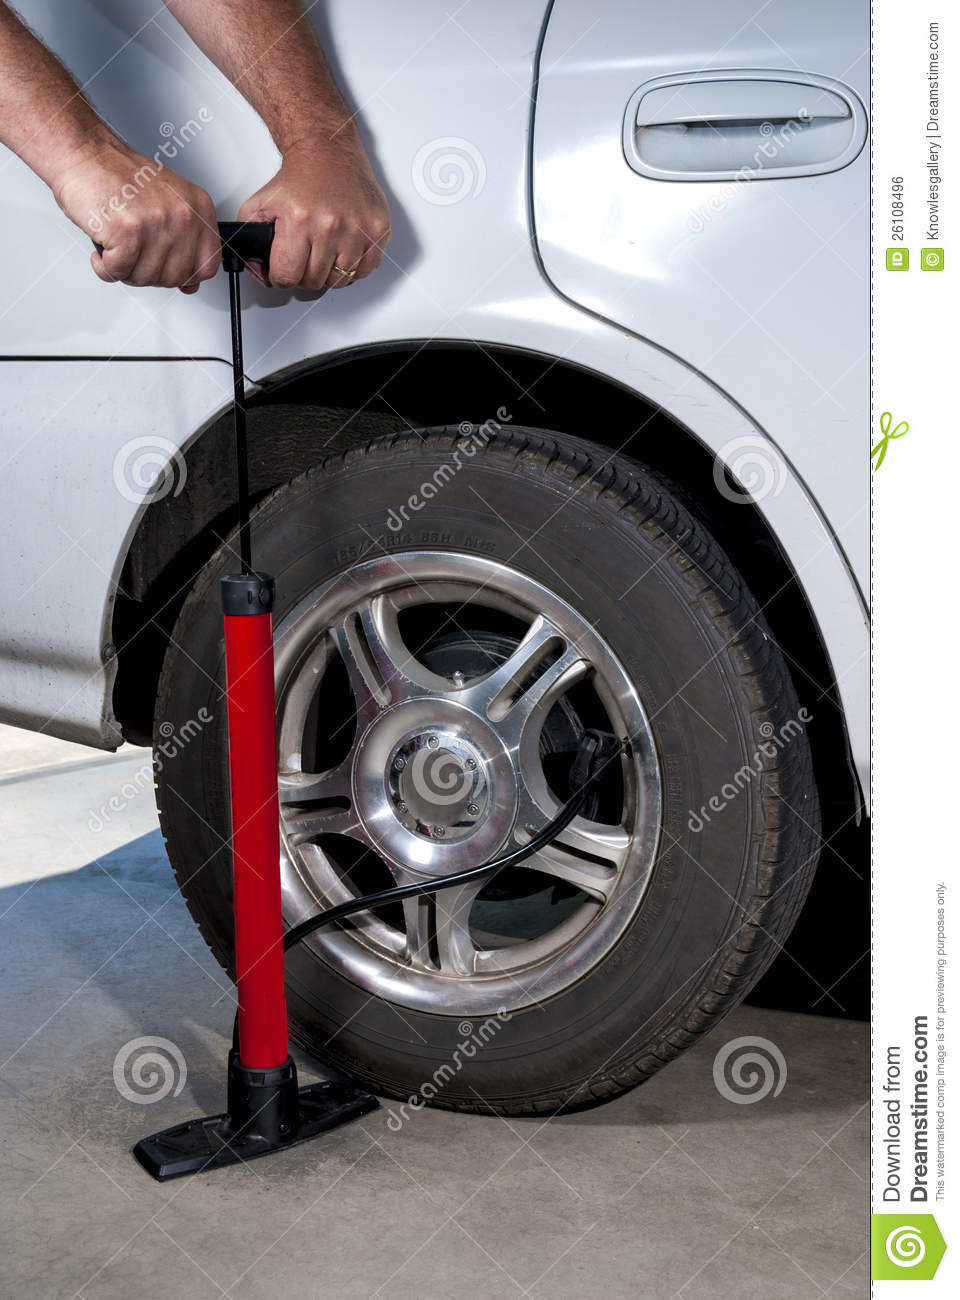 A To Z Tire >> Pump car tire with air stock photo. Image of rubber, pump - 26108496